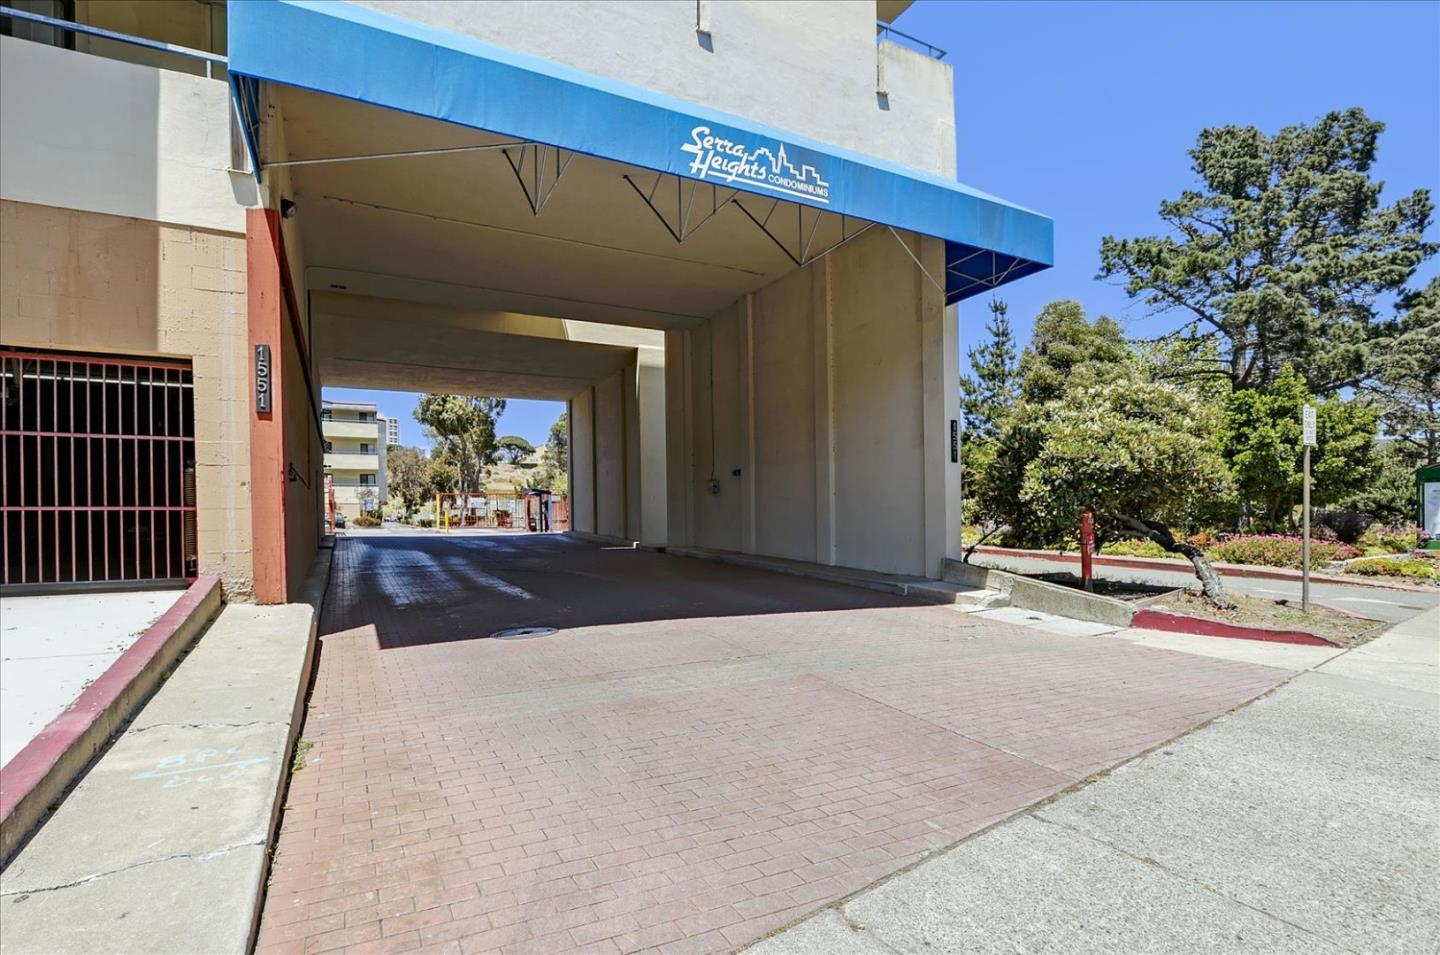 Location! Location! Location! 2 Bedroom, 2 Bath plus Den.  Top Corner Unit.  Lots of natural light with large windows.  Open Floor Plan with access to terrace.  Carpet throughout, vinyl floor kitchen , bathroom with stone tiled.  Close to shopping, easy access to freeway 280, minutes from Daly City Bart Station.